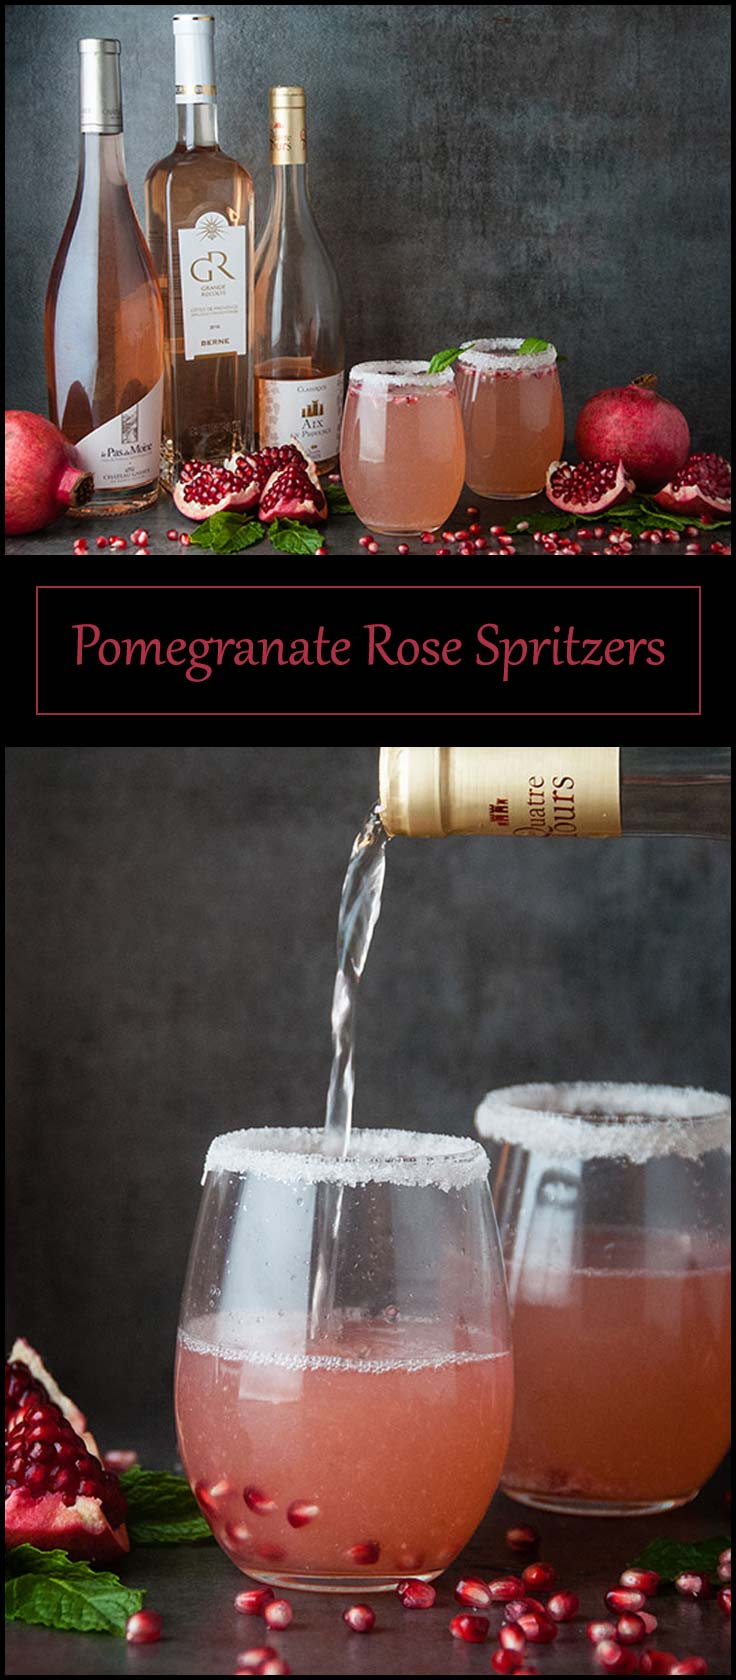 Pomegranate Rosé Spritzers from www.seasonedsprinkles.com